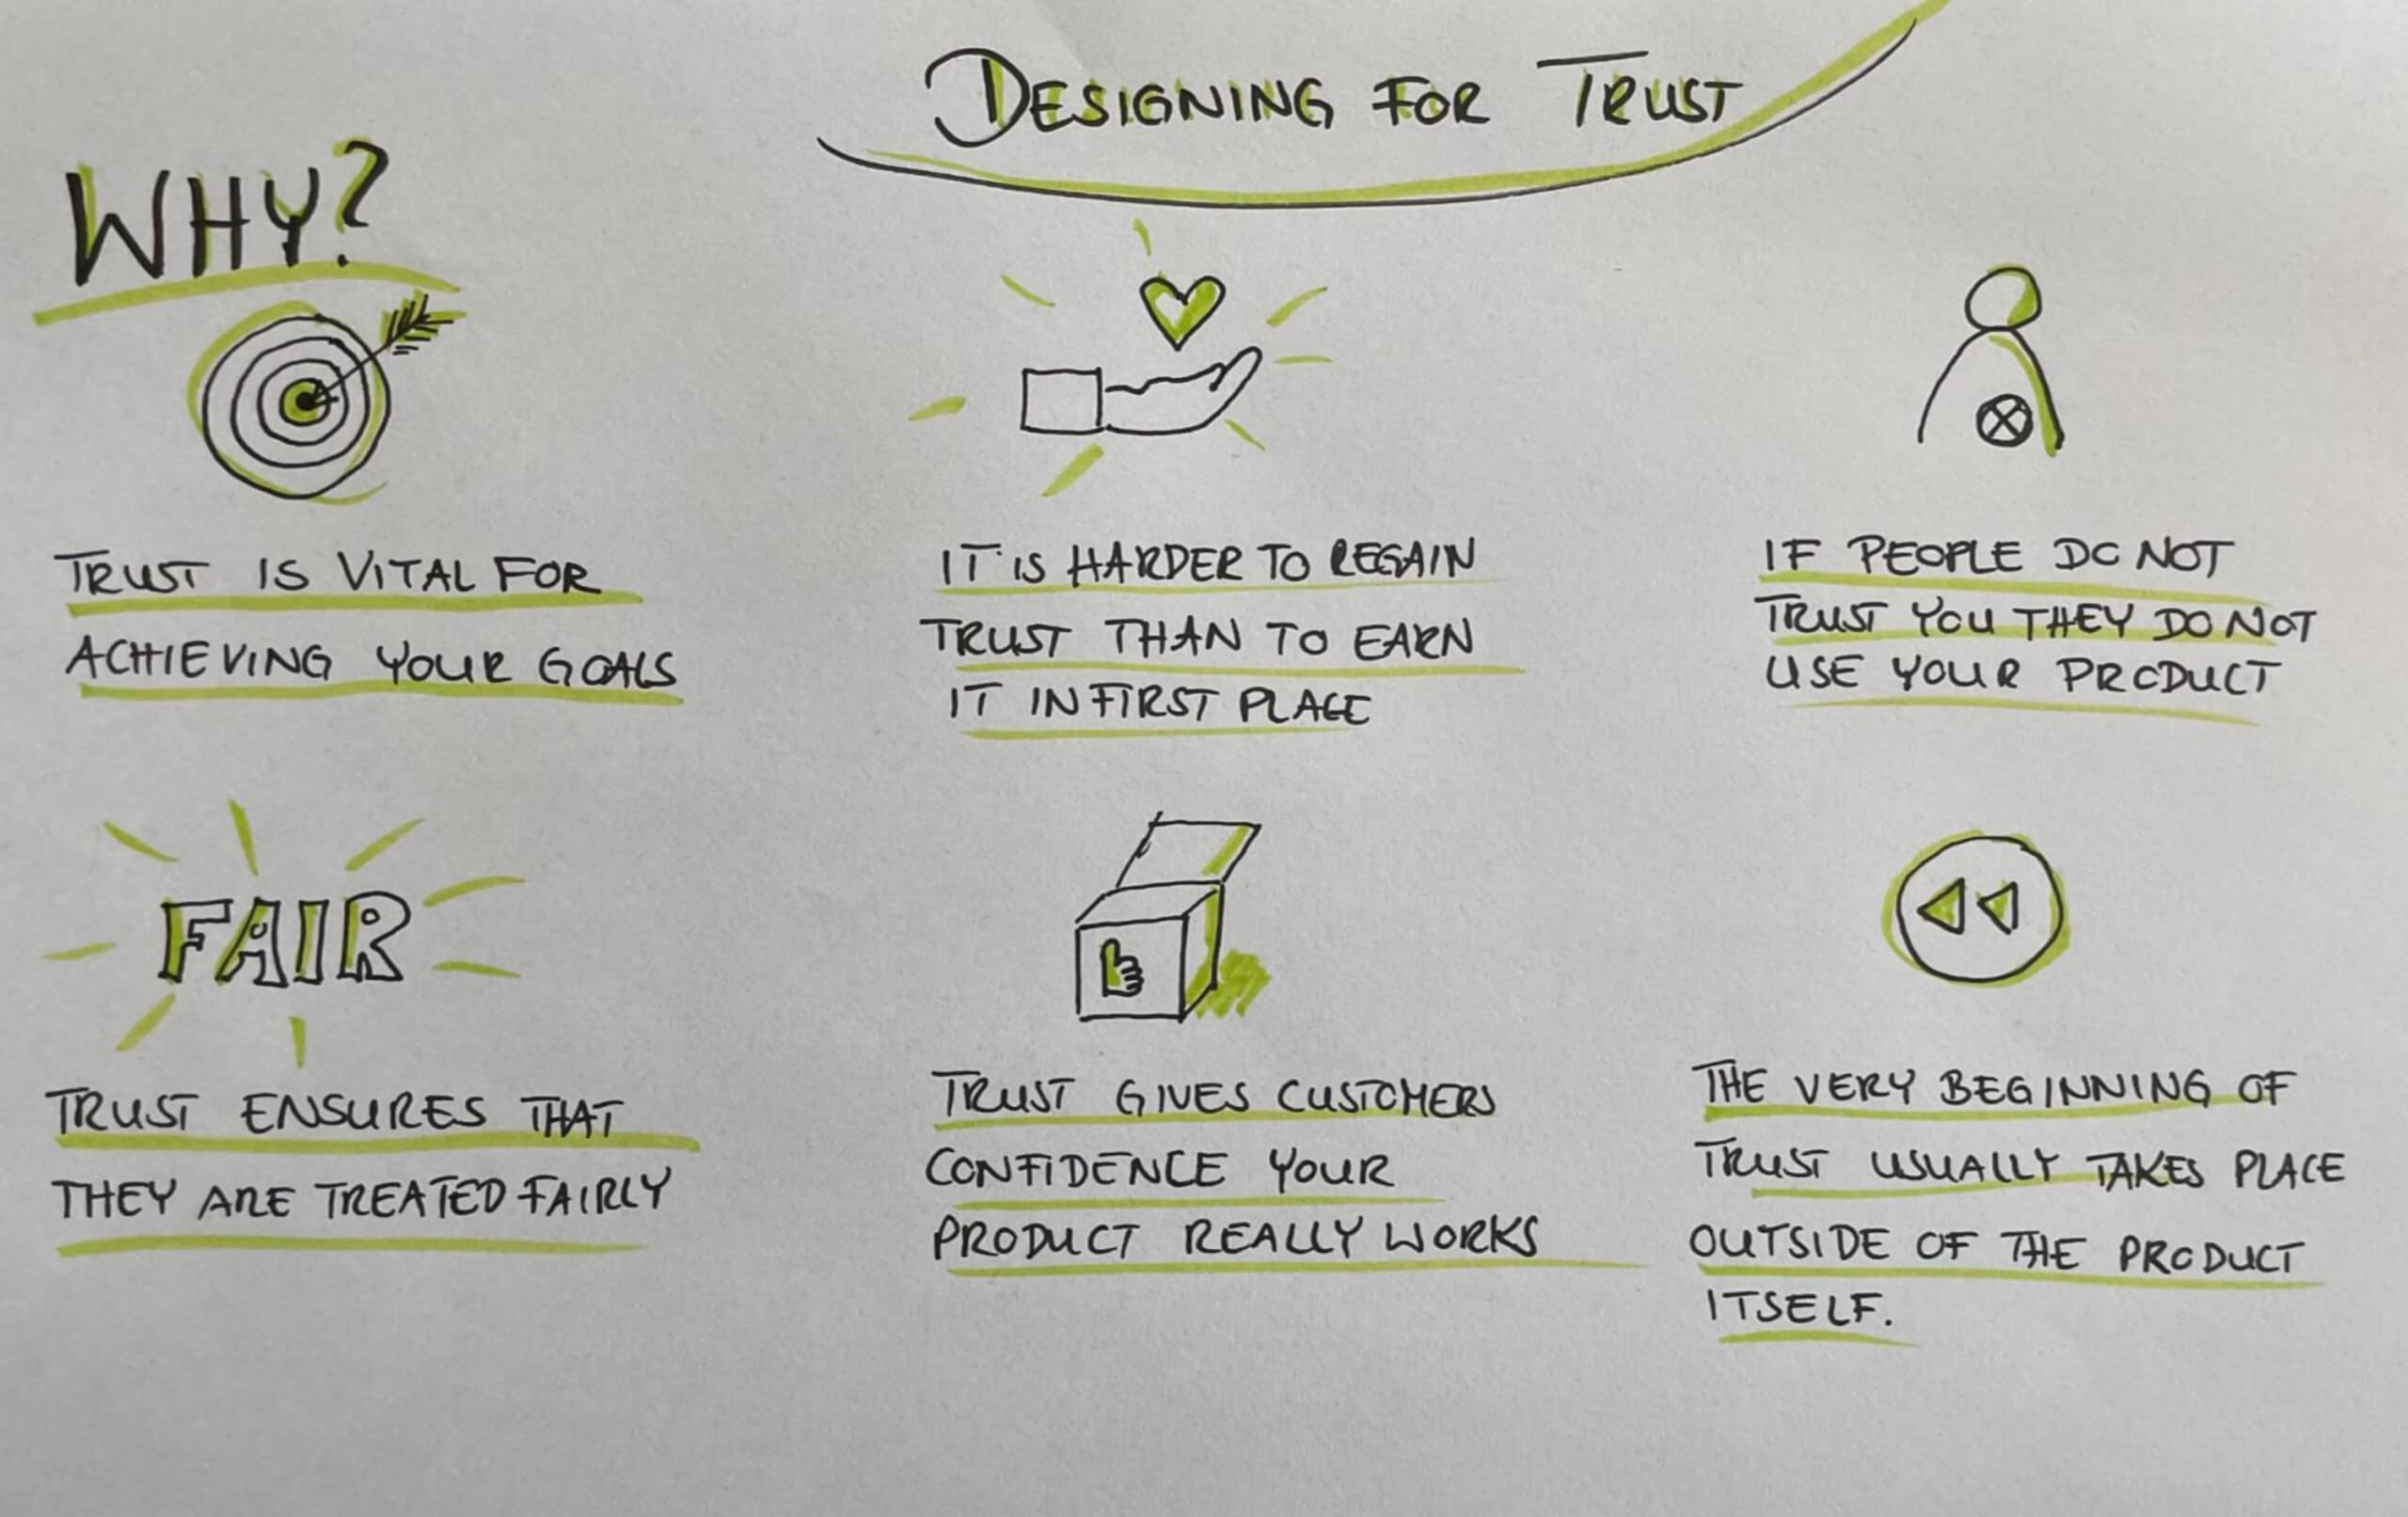 How to design for Behavior Change: Trust